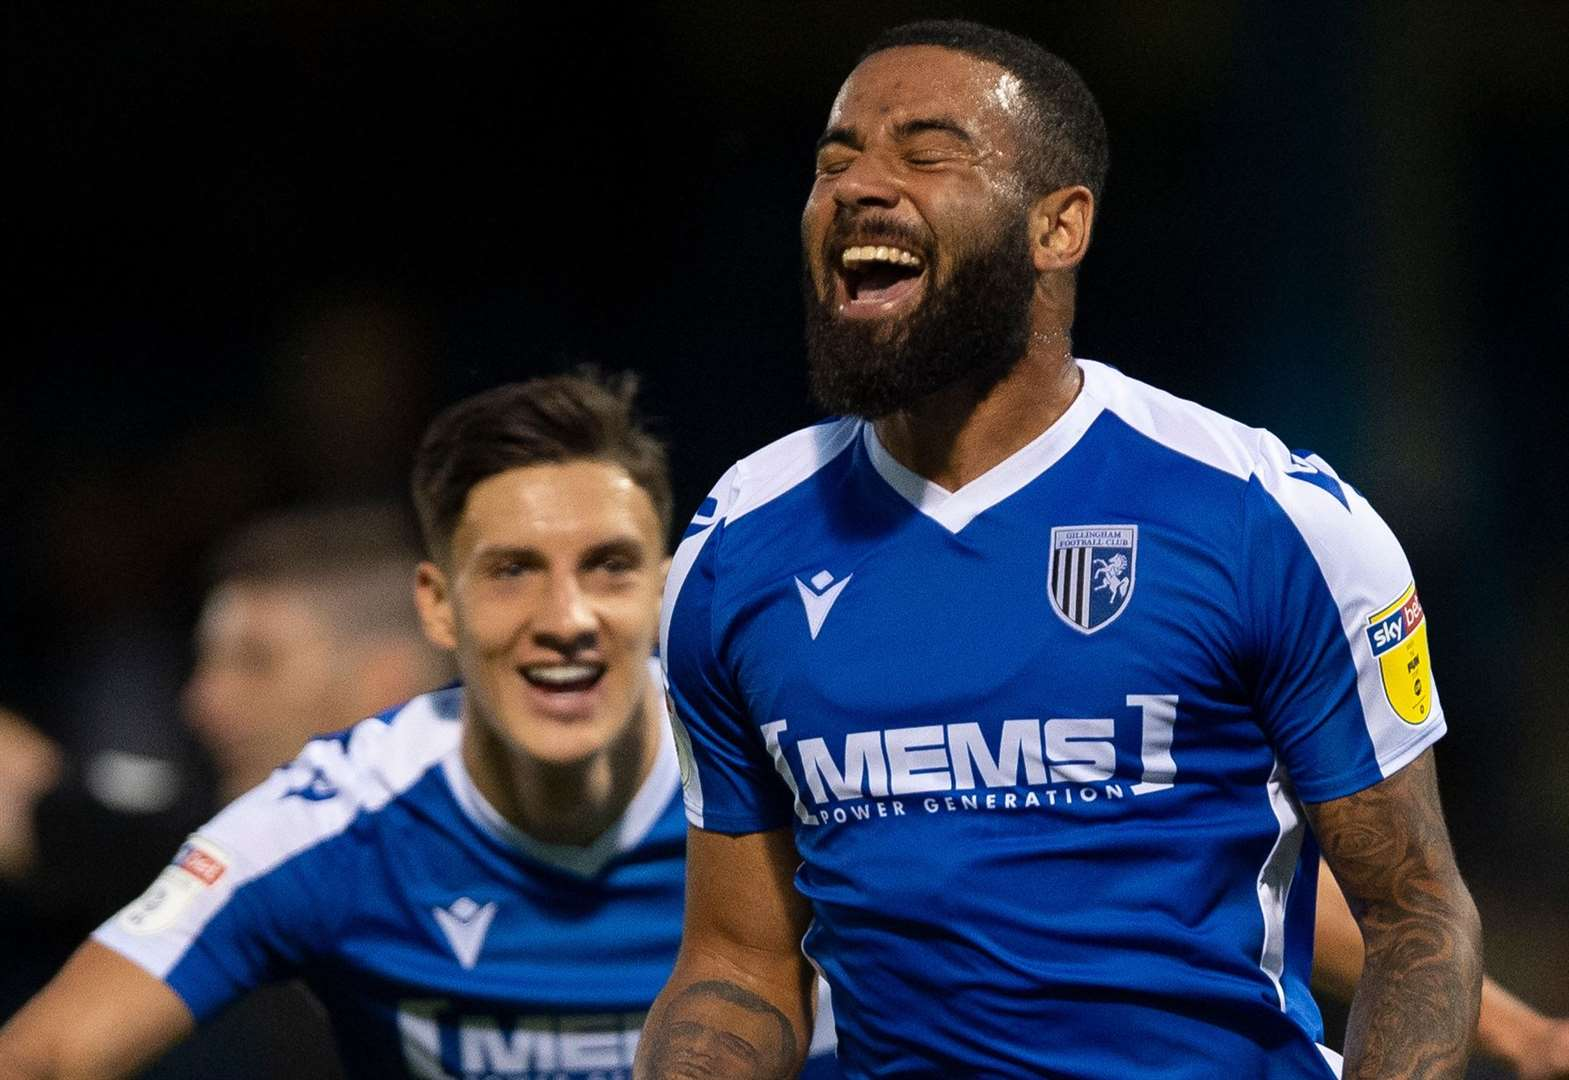 Gills v Blackpool - top 10 pictures